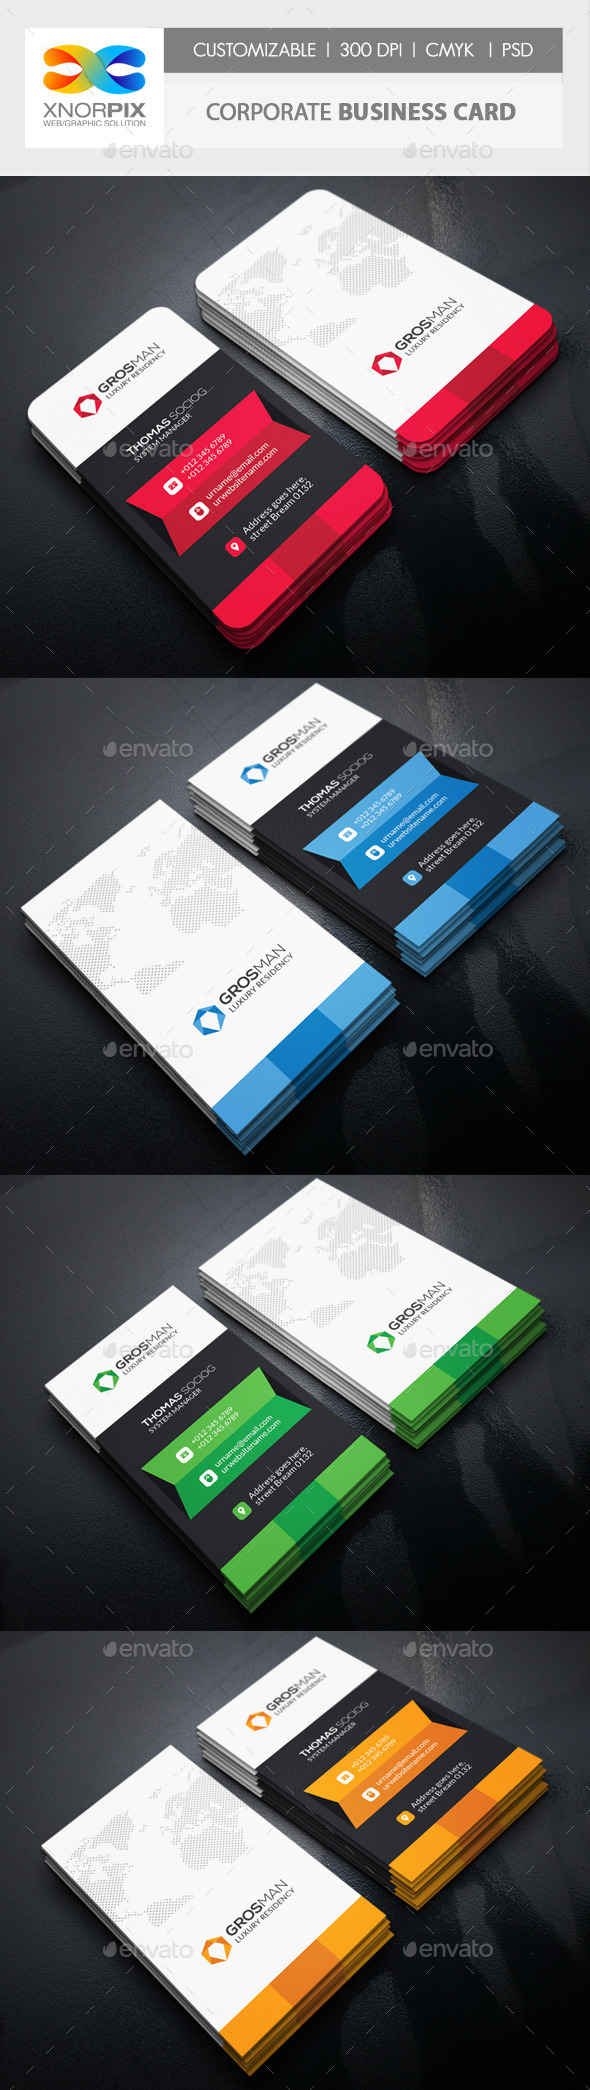 GraphicRiver Corporate Business Card 11299207